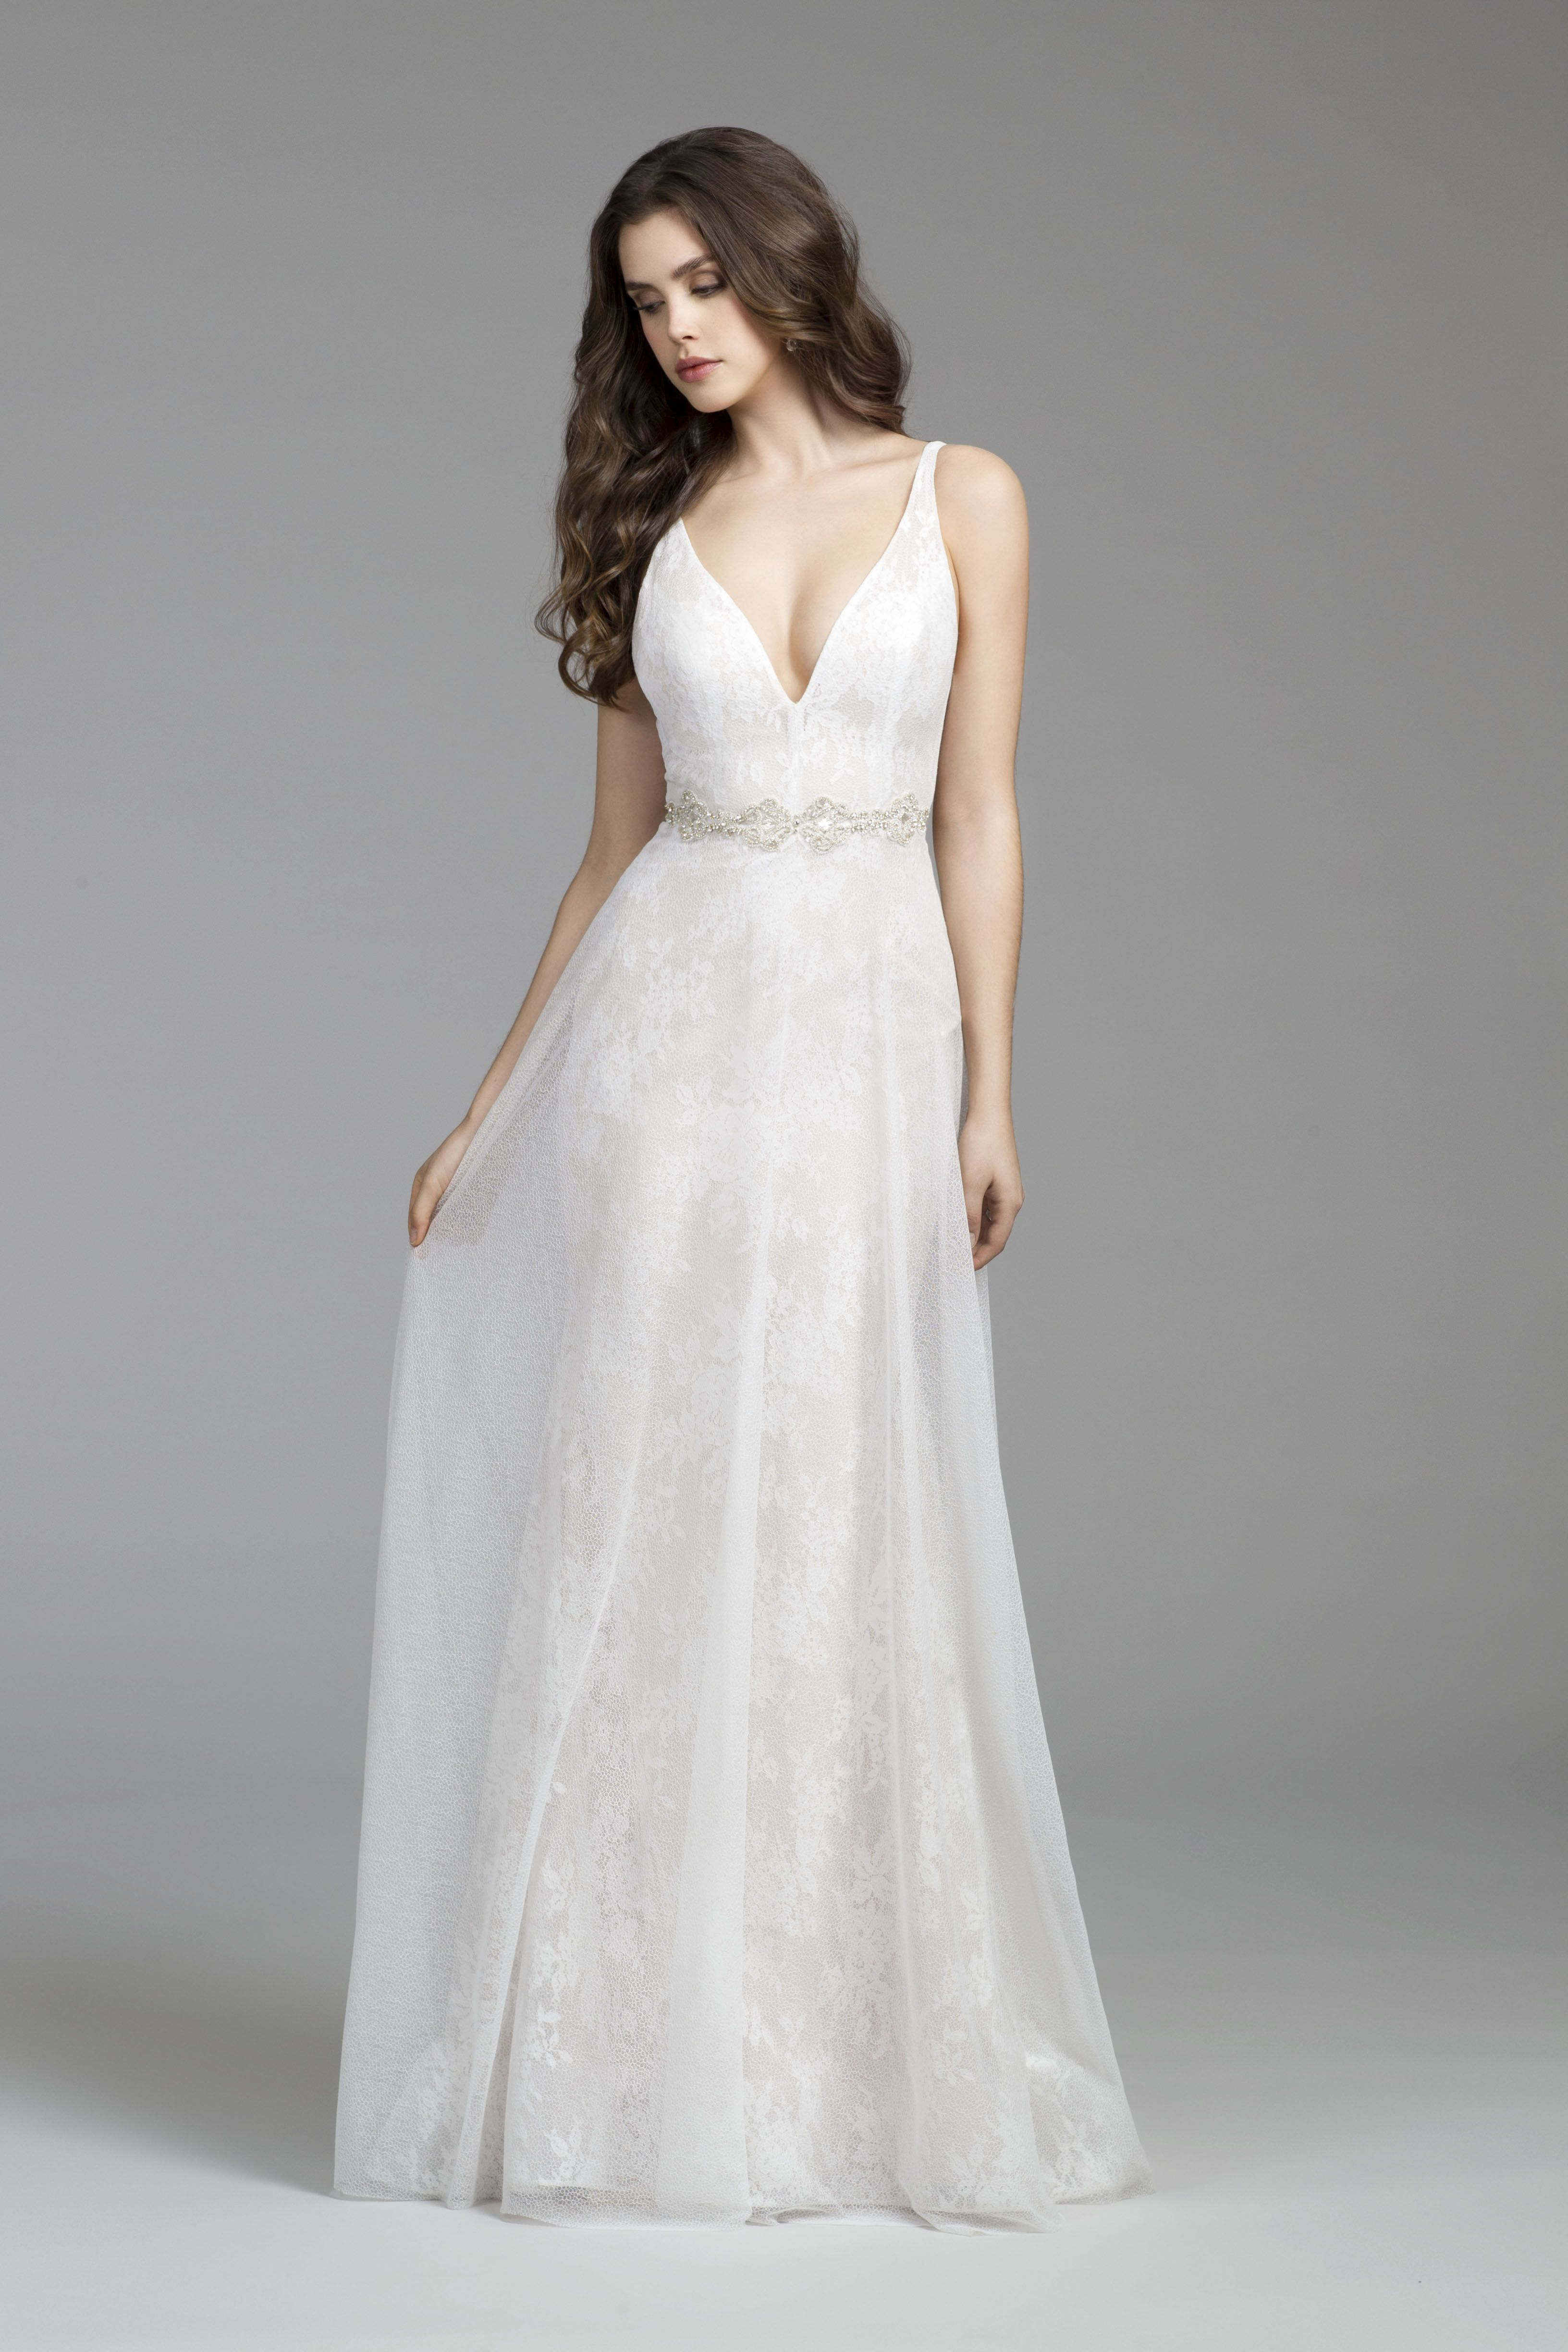 Bridal Gown Wedding Dresses By Tara Keely Style 2656